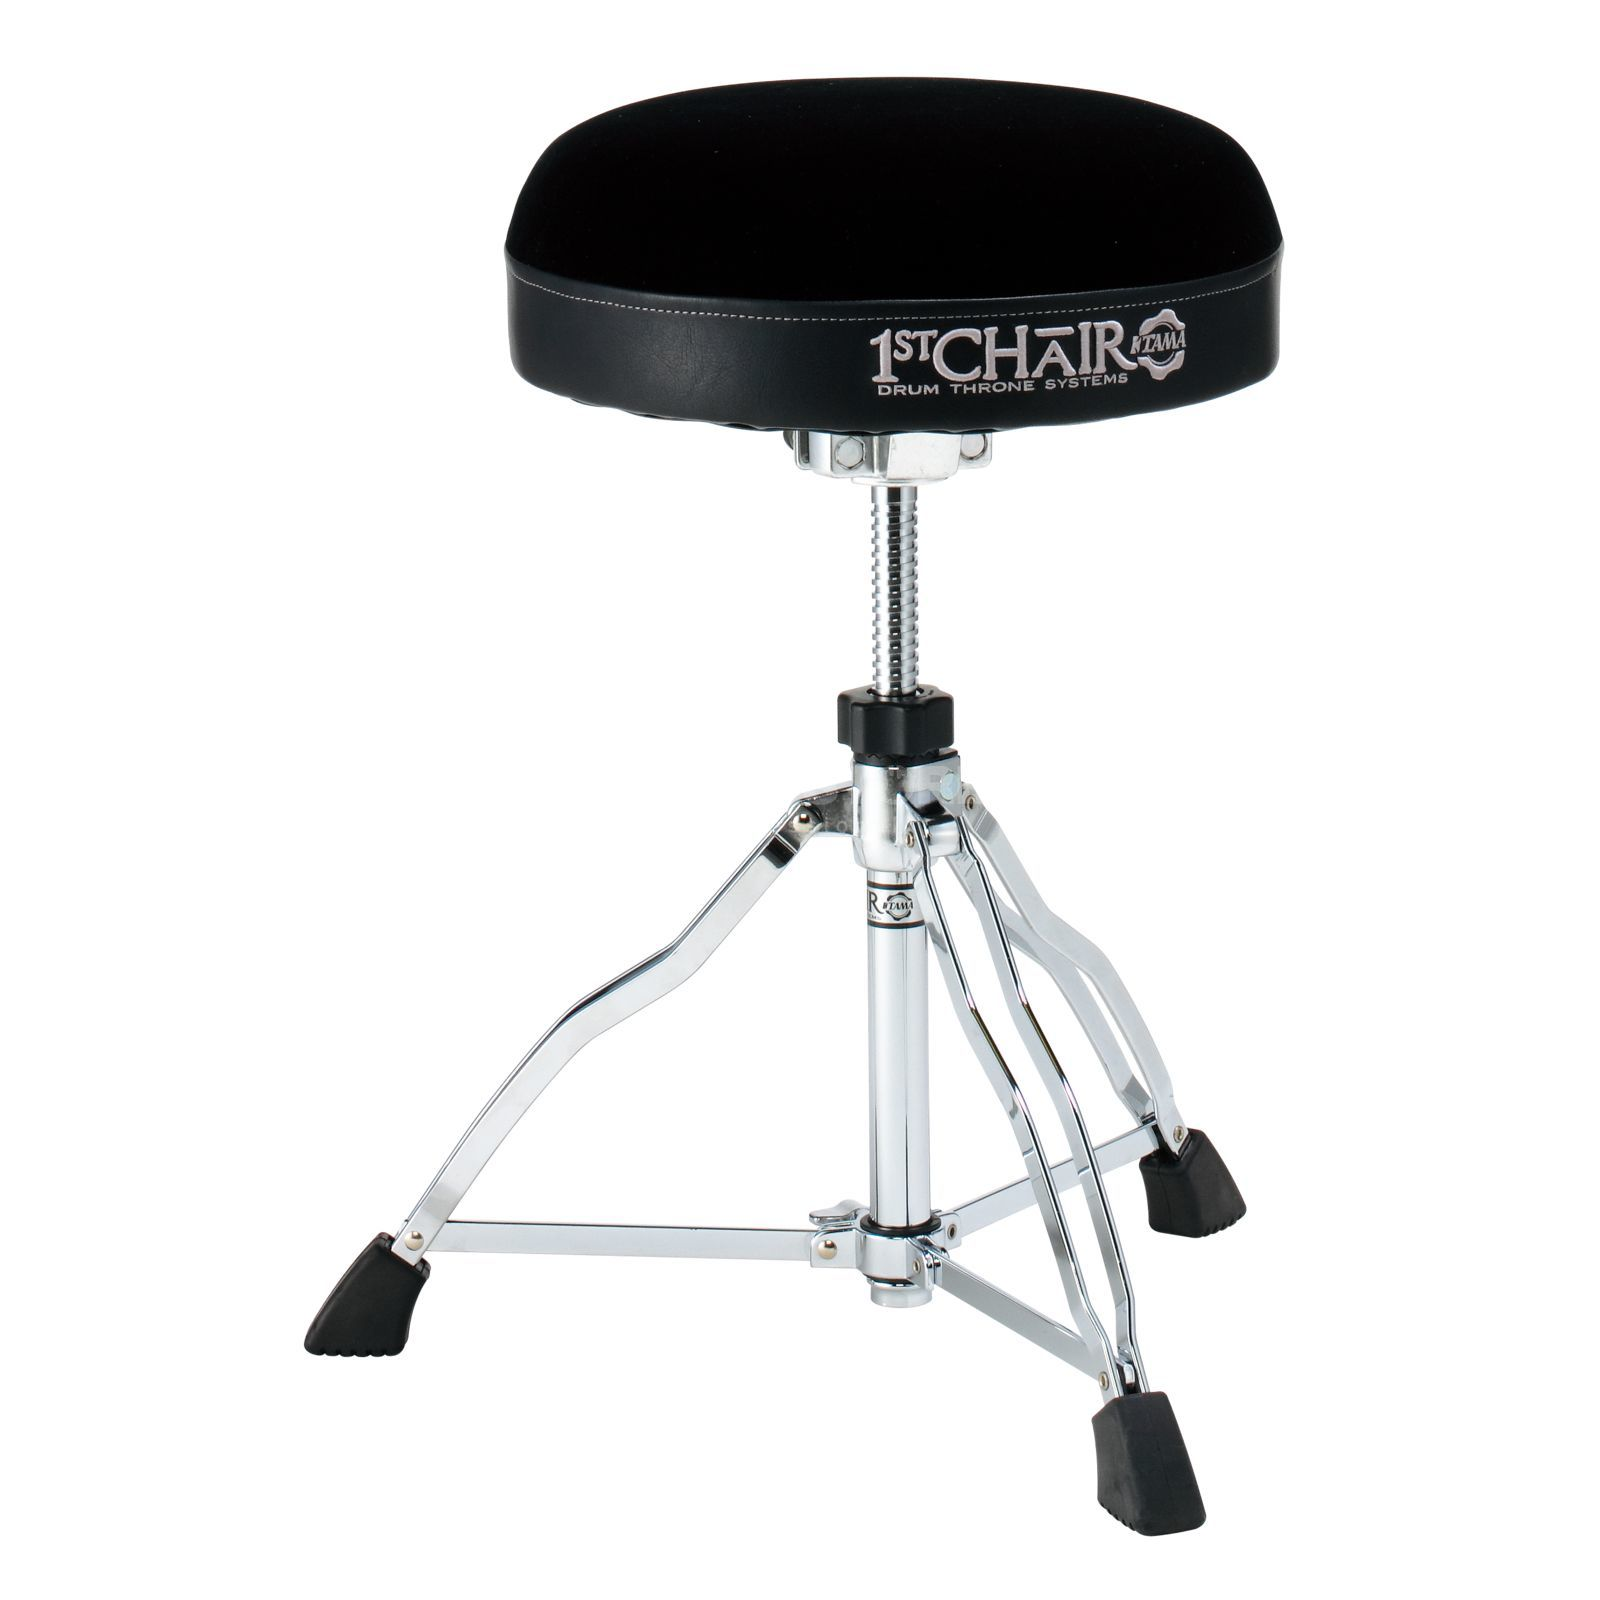 Tama Drum Throne HT630C 1st Chair Round Rider Product Image